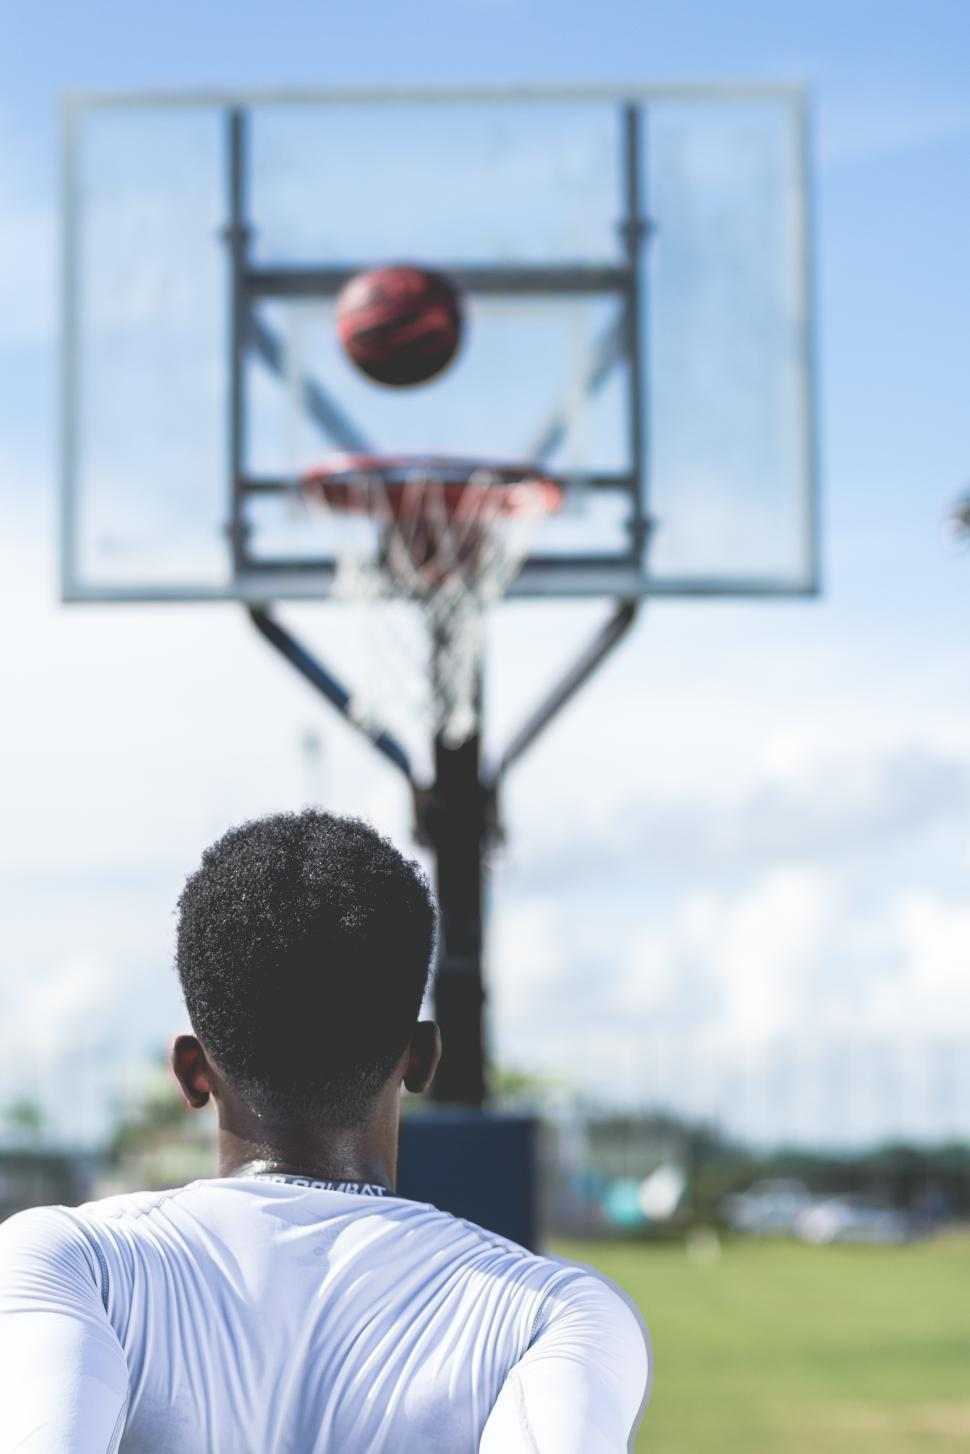 Download Free Stock Photo of Back side view of young man shooting a basketball toward a hoop